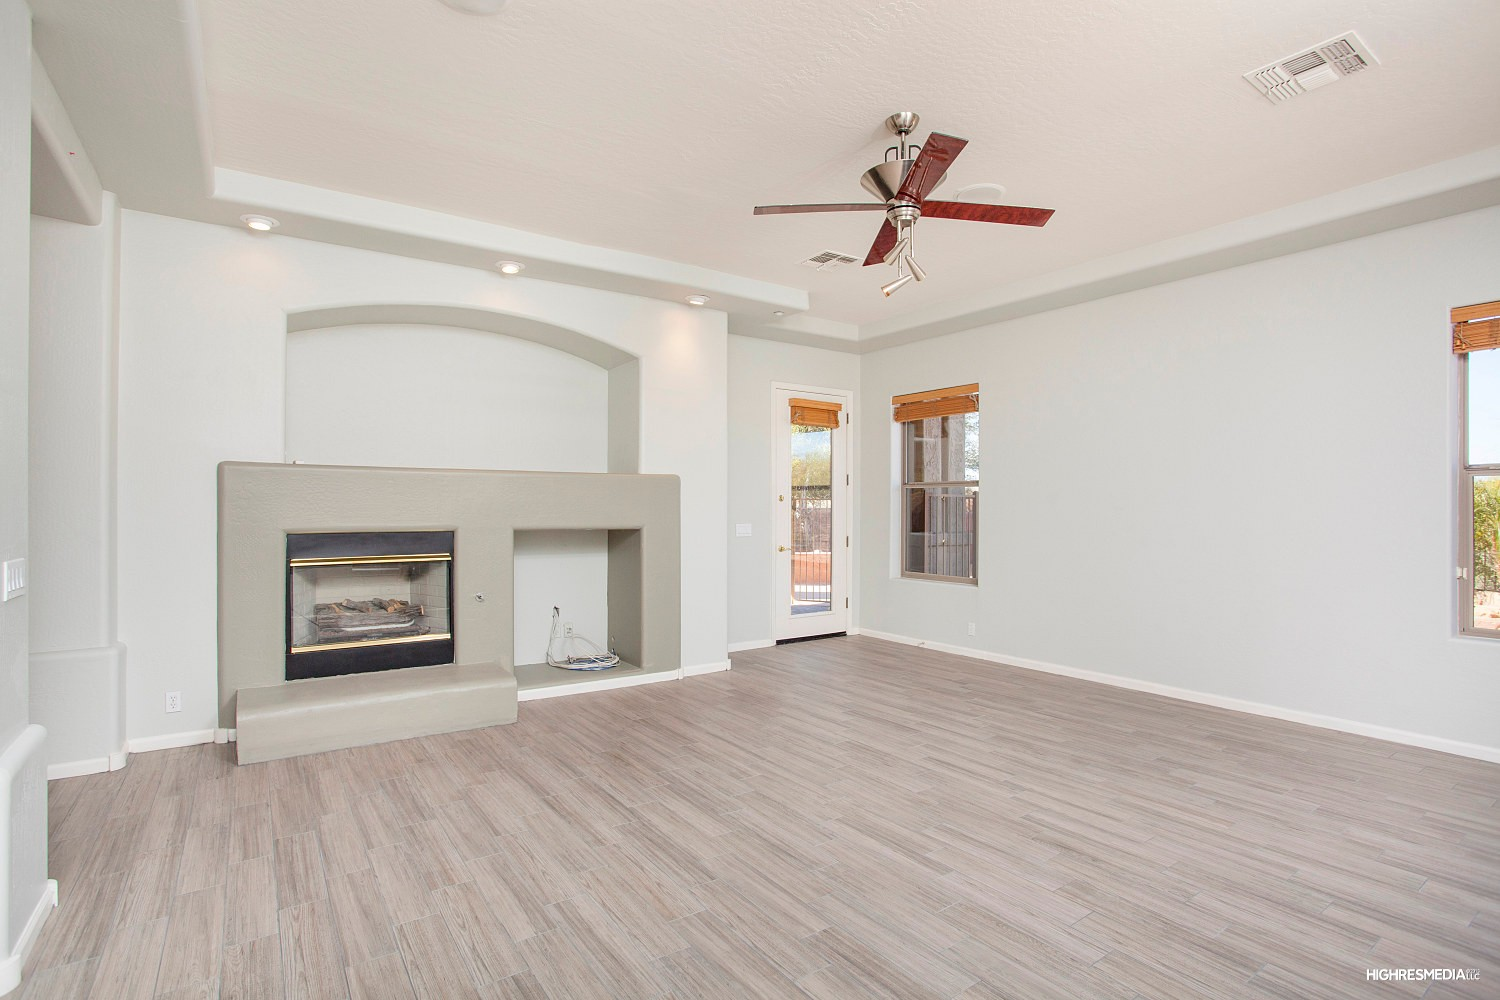 flooring trends to try in your scottsdale home this year kitchen flooring trends floors in all the rooms of the house or just focus on the kitchen or family room following the latest flooring trends is a great way to get a look